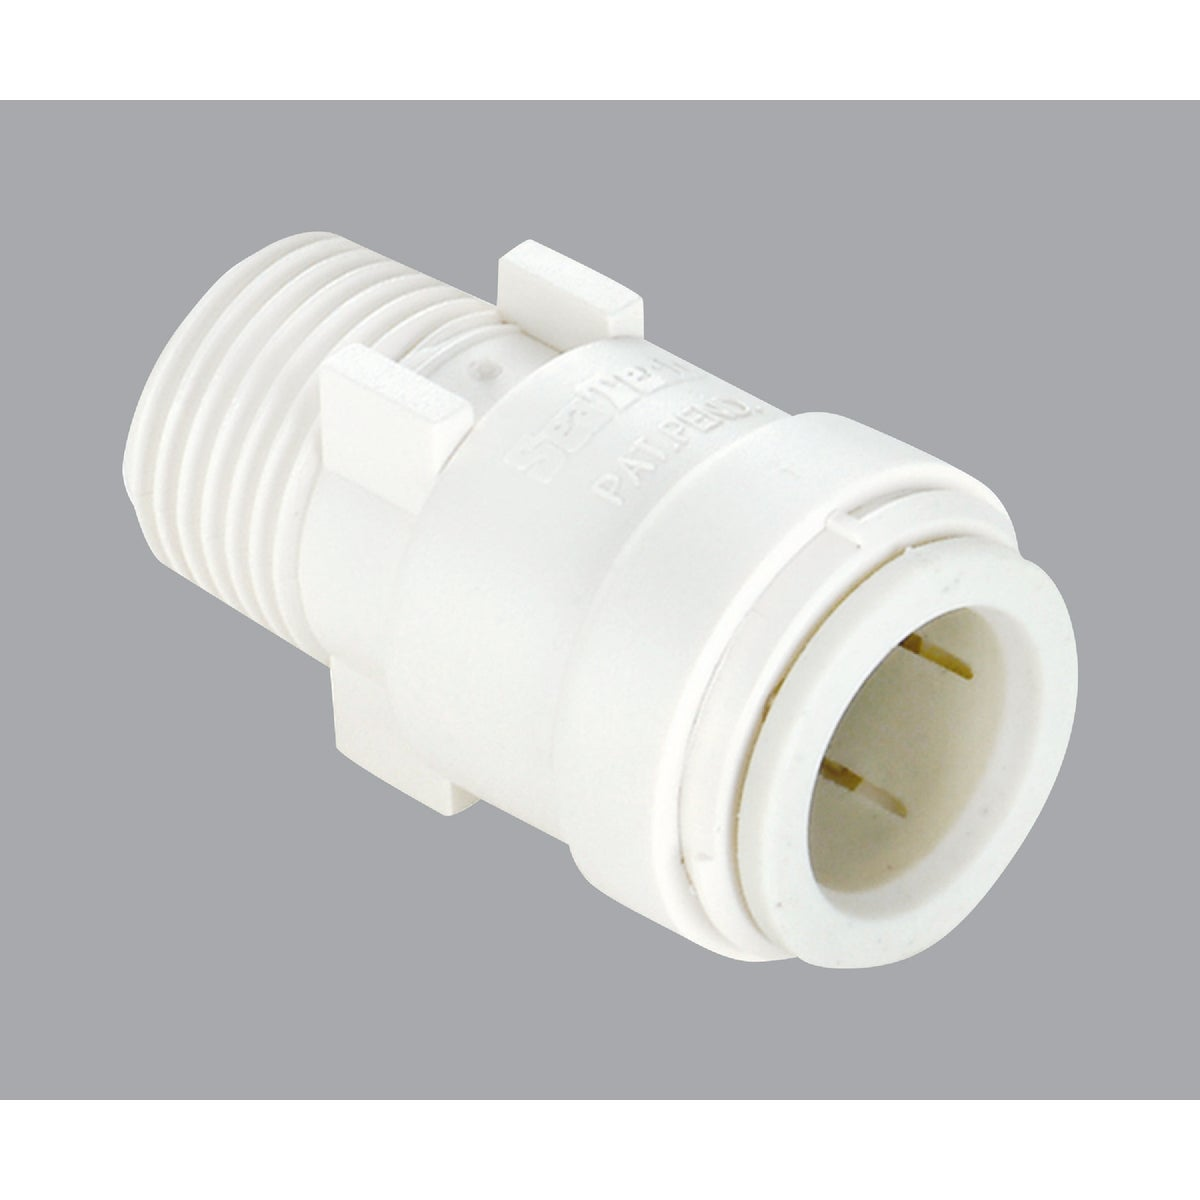 3/8CTSX1/2MPT ADAPTER - P-412 by Watts Pex